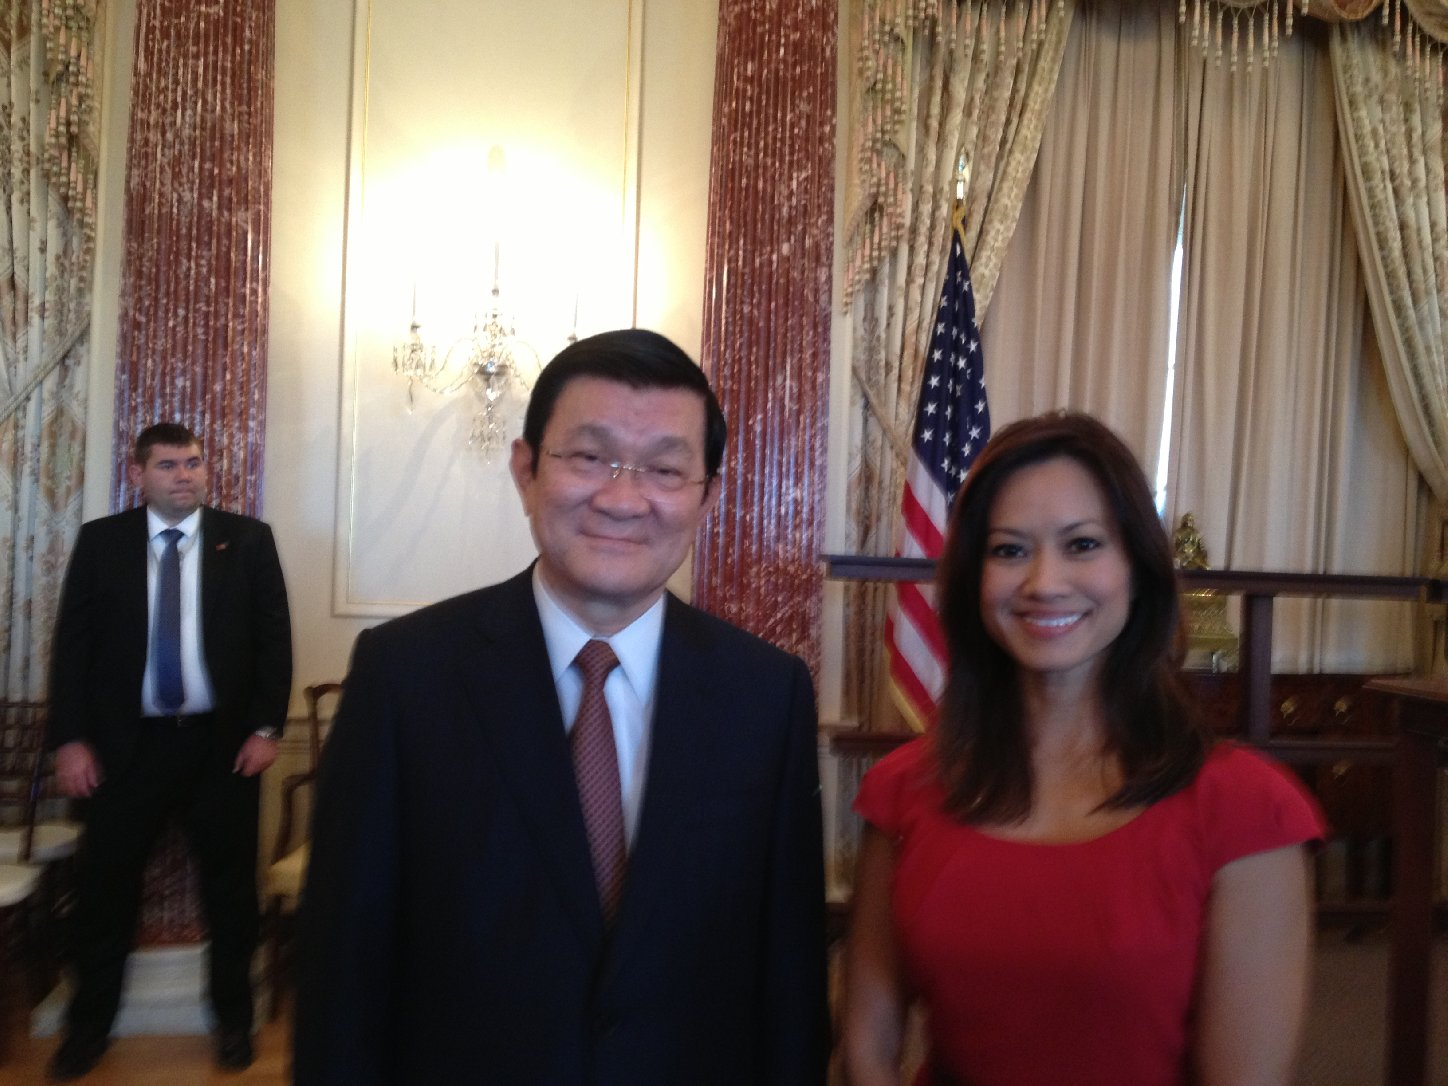 Vietnam's President Truong Tan Sang and Thuy Vu at Thursday's luncheon. (Thuy Vu/KQED)